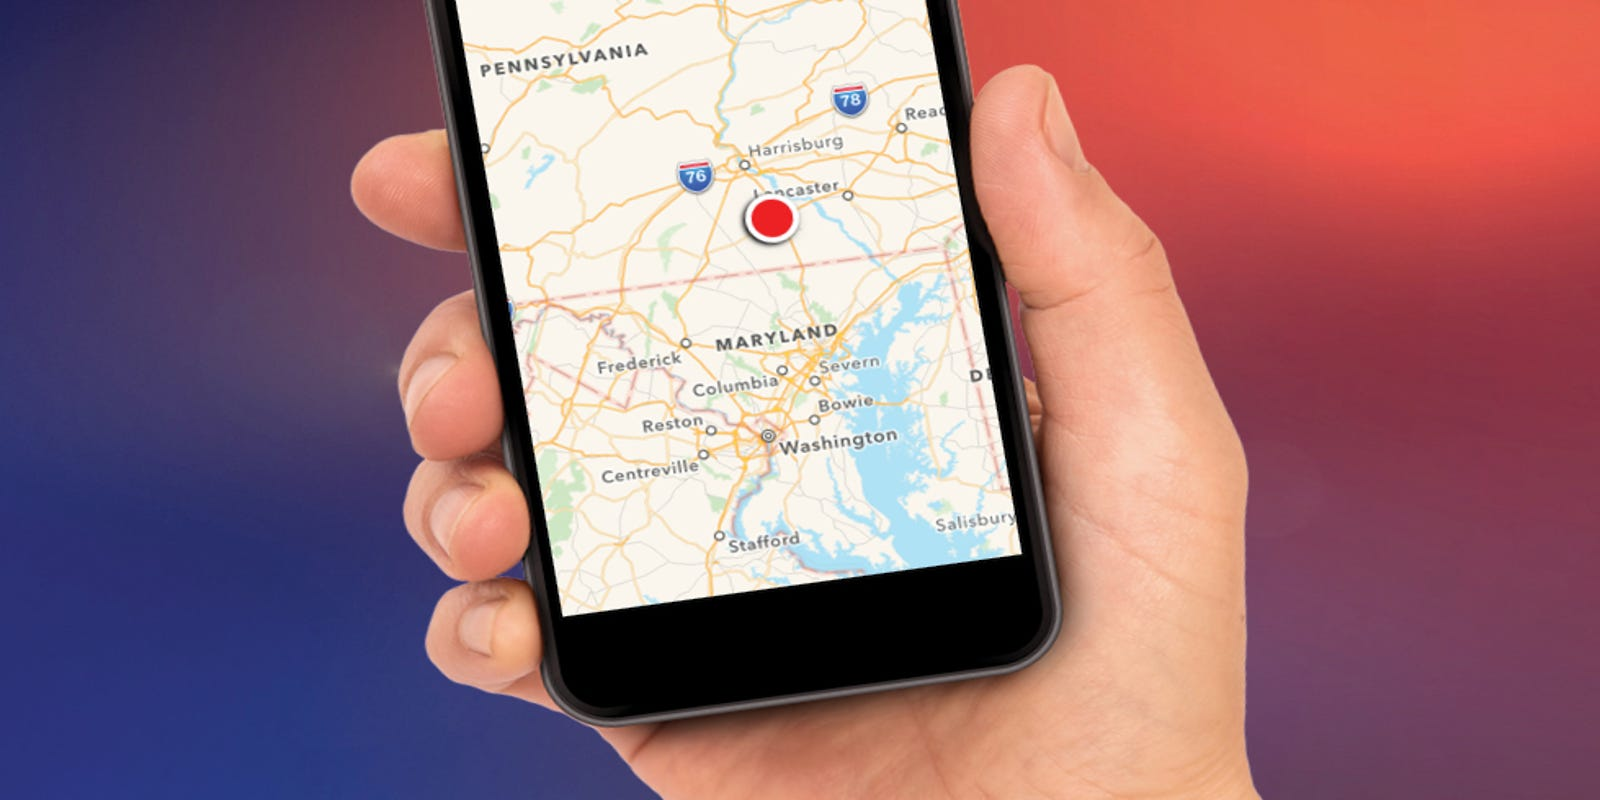 Cellphone Tracking Raises Legal Issues On Pinterest Electrical Projects Electronics And Watchdog Timer